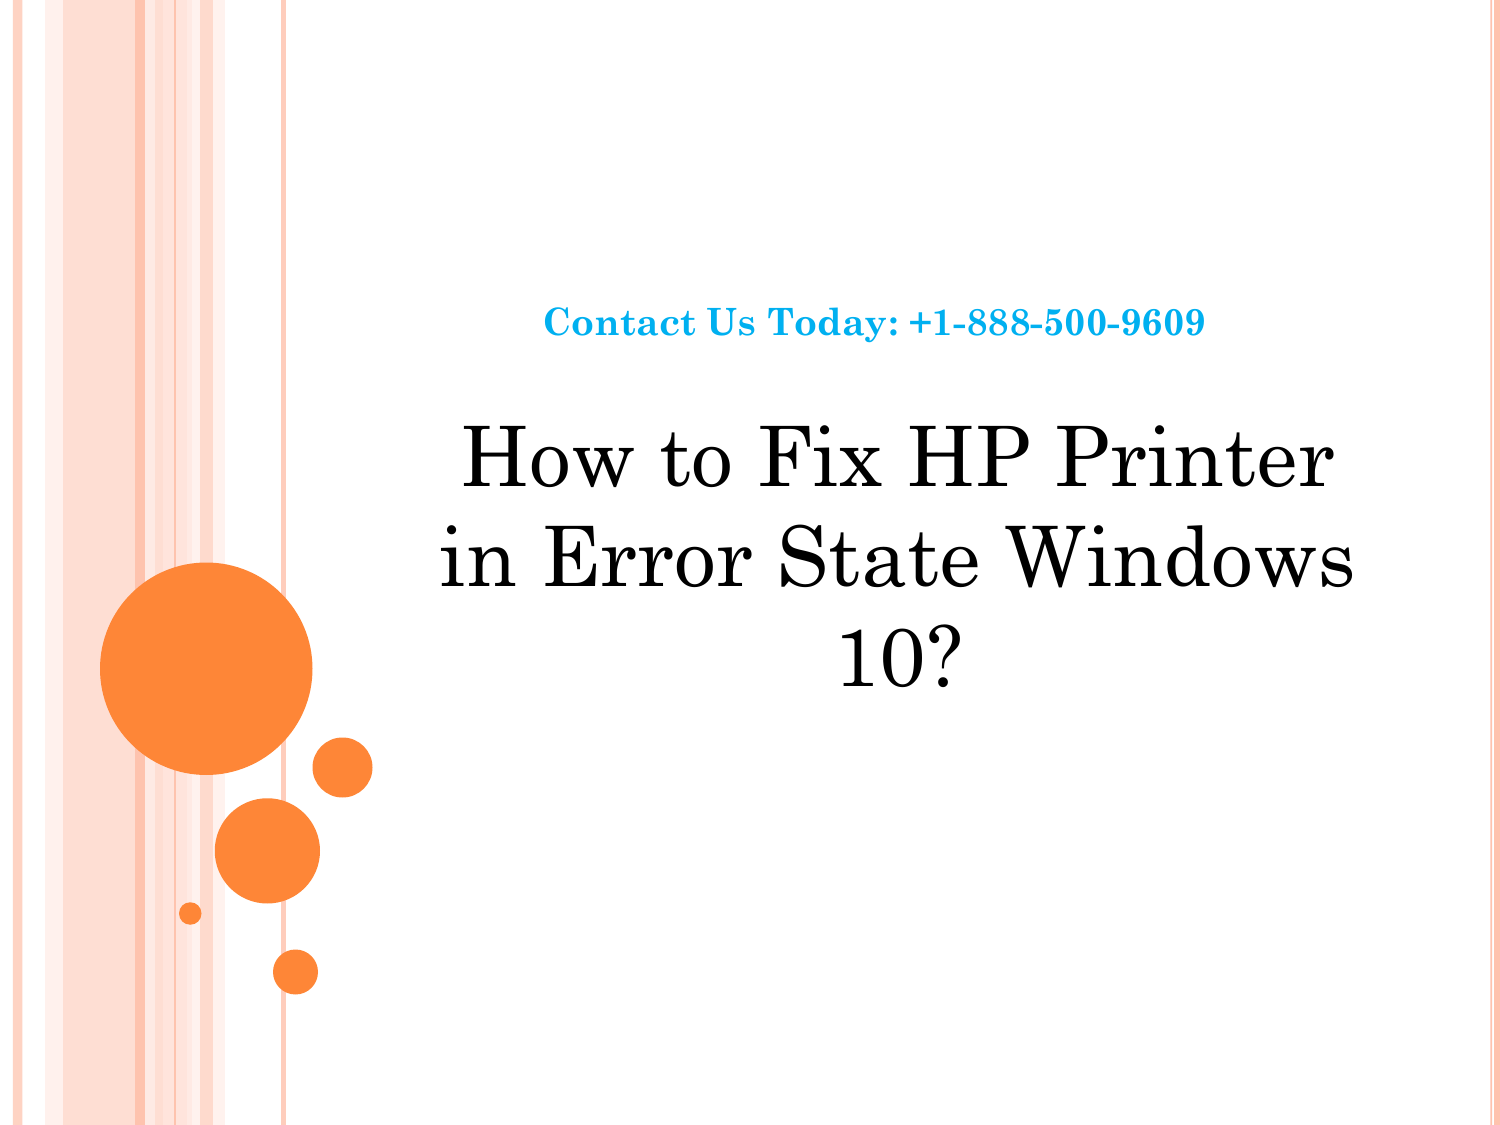 HP Printer Error State Issues in Windows 10 | Contact Today +1-888